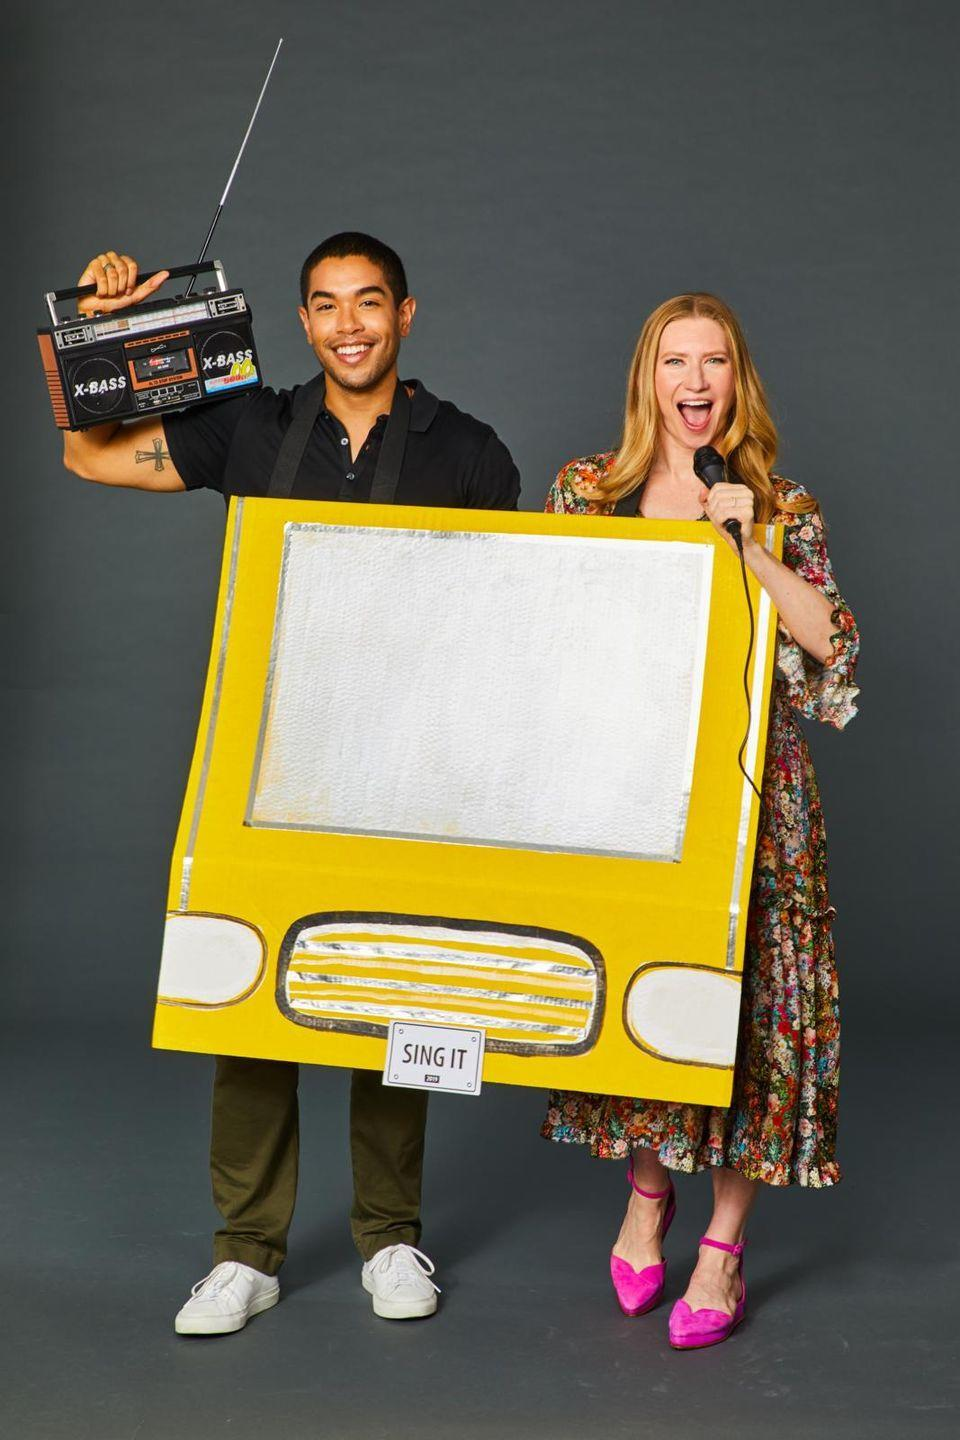 """<p>Couples, this one's for you! Use silver and black paint to turn a yellow presentation board into a taxi. Then, make velcro straps that can go around your necks and add any accessories of your choice. The hardest part: figuring out the karaoke playlist.</p><p><a class=""""link rapid-noclick-resp"""" href=""""https://www.amazon.com/JENSEN-CD-490-Portable-Stereo-Player/dp/B00BCA40S0/?tag=syn-yahoo-20&ascsubtag=%5Bartid%7C10055.g.2750%5Bsrc%7Cyahoo-us"""" rel=""""nofollow noopener"""" target=""""_blank"""" data-ylk=""""slk:SHOP BOOM BOXES""""><strong>SHOP BOOM BOXES</strong></a></p>"""